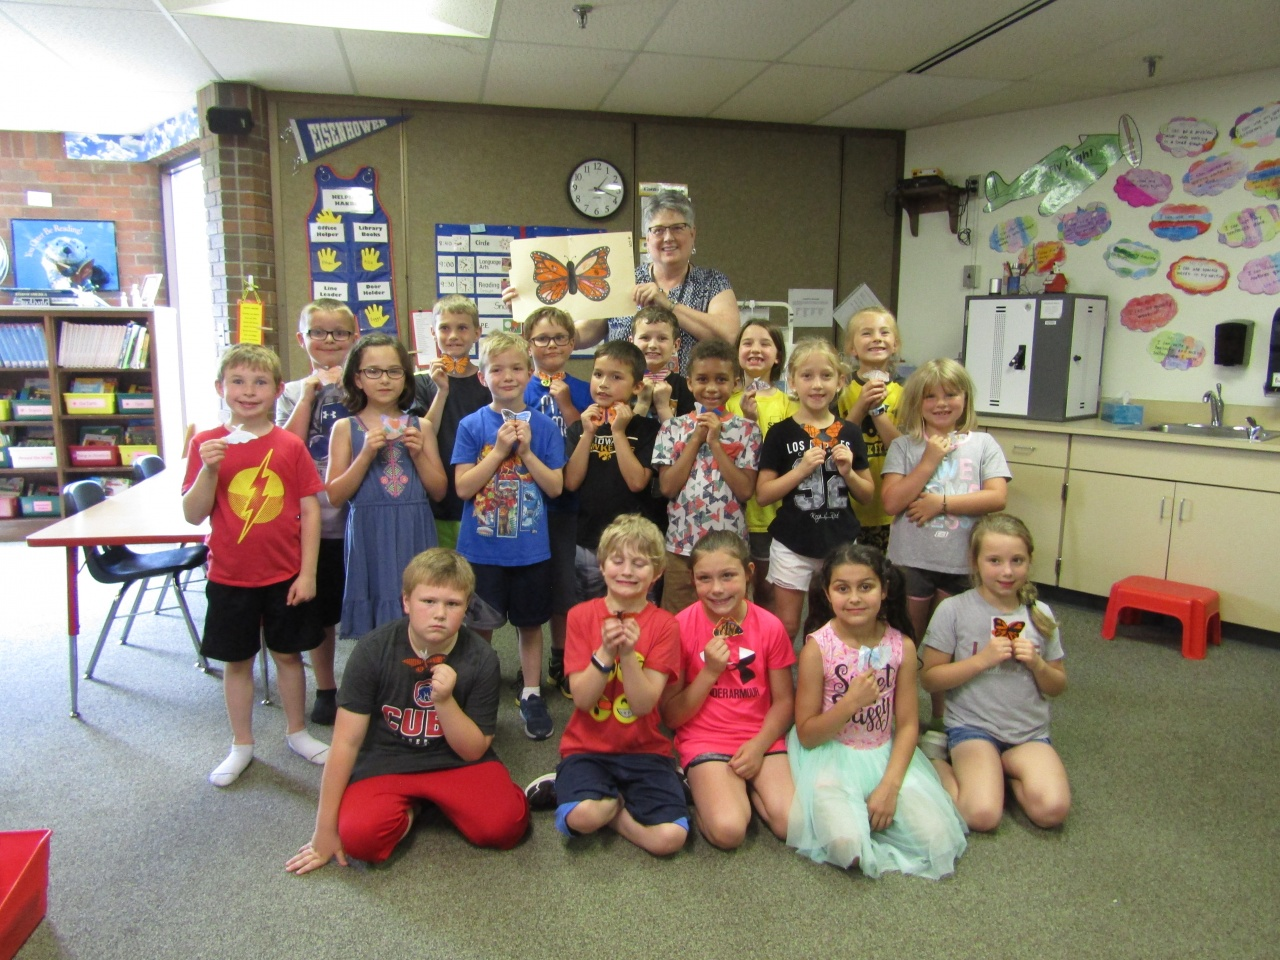 2nd Graders Send Monarchs On Their Great Migration